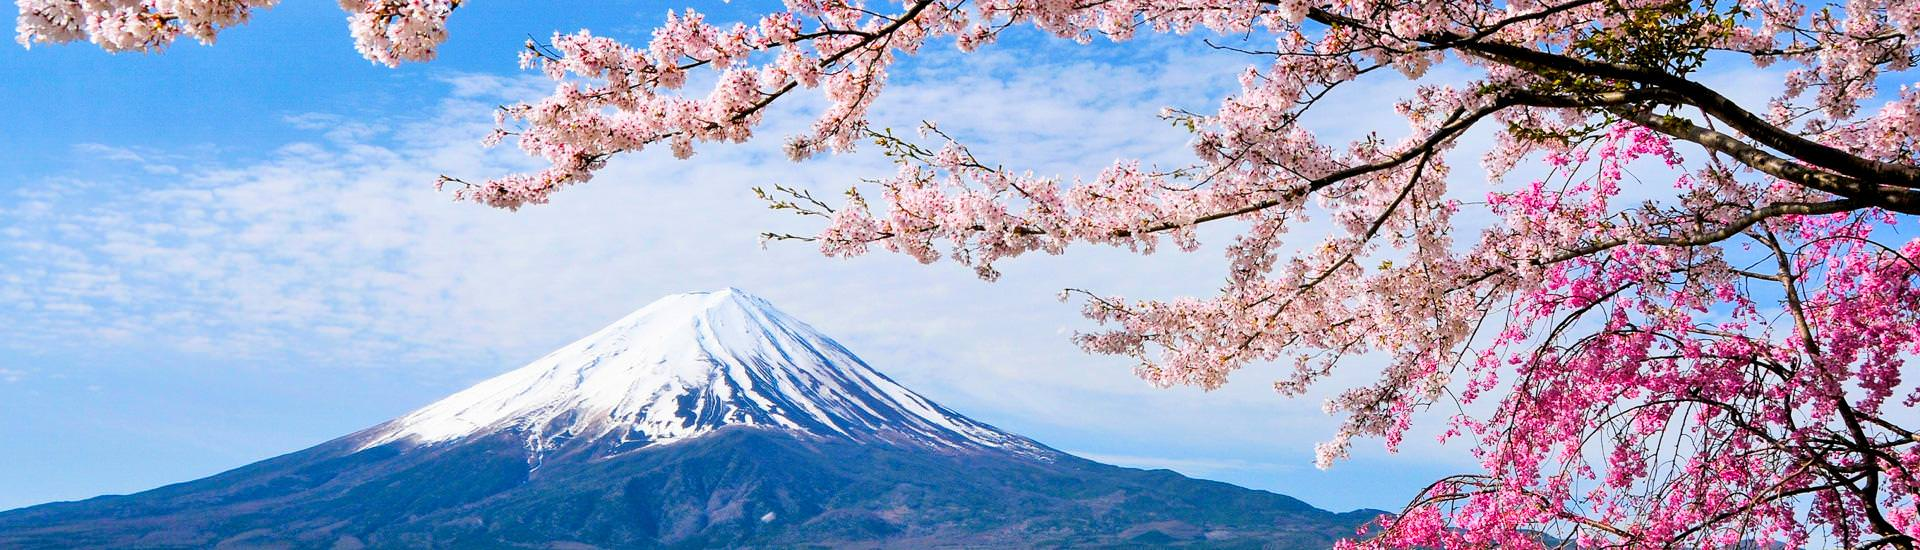 Mount Fuji and Cherry tree (© Goryu, iStockphoto.com / Chamäleon)